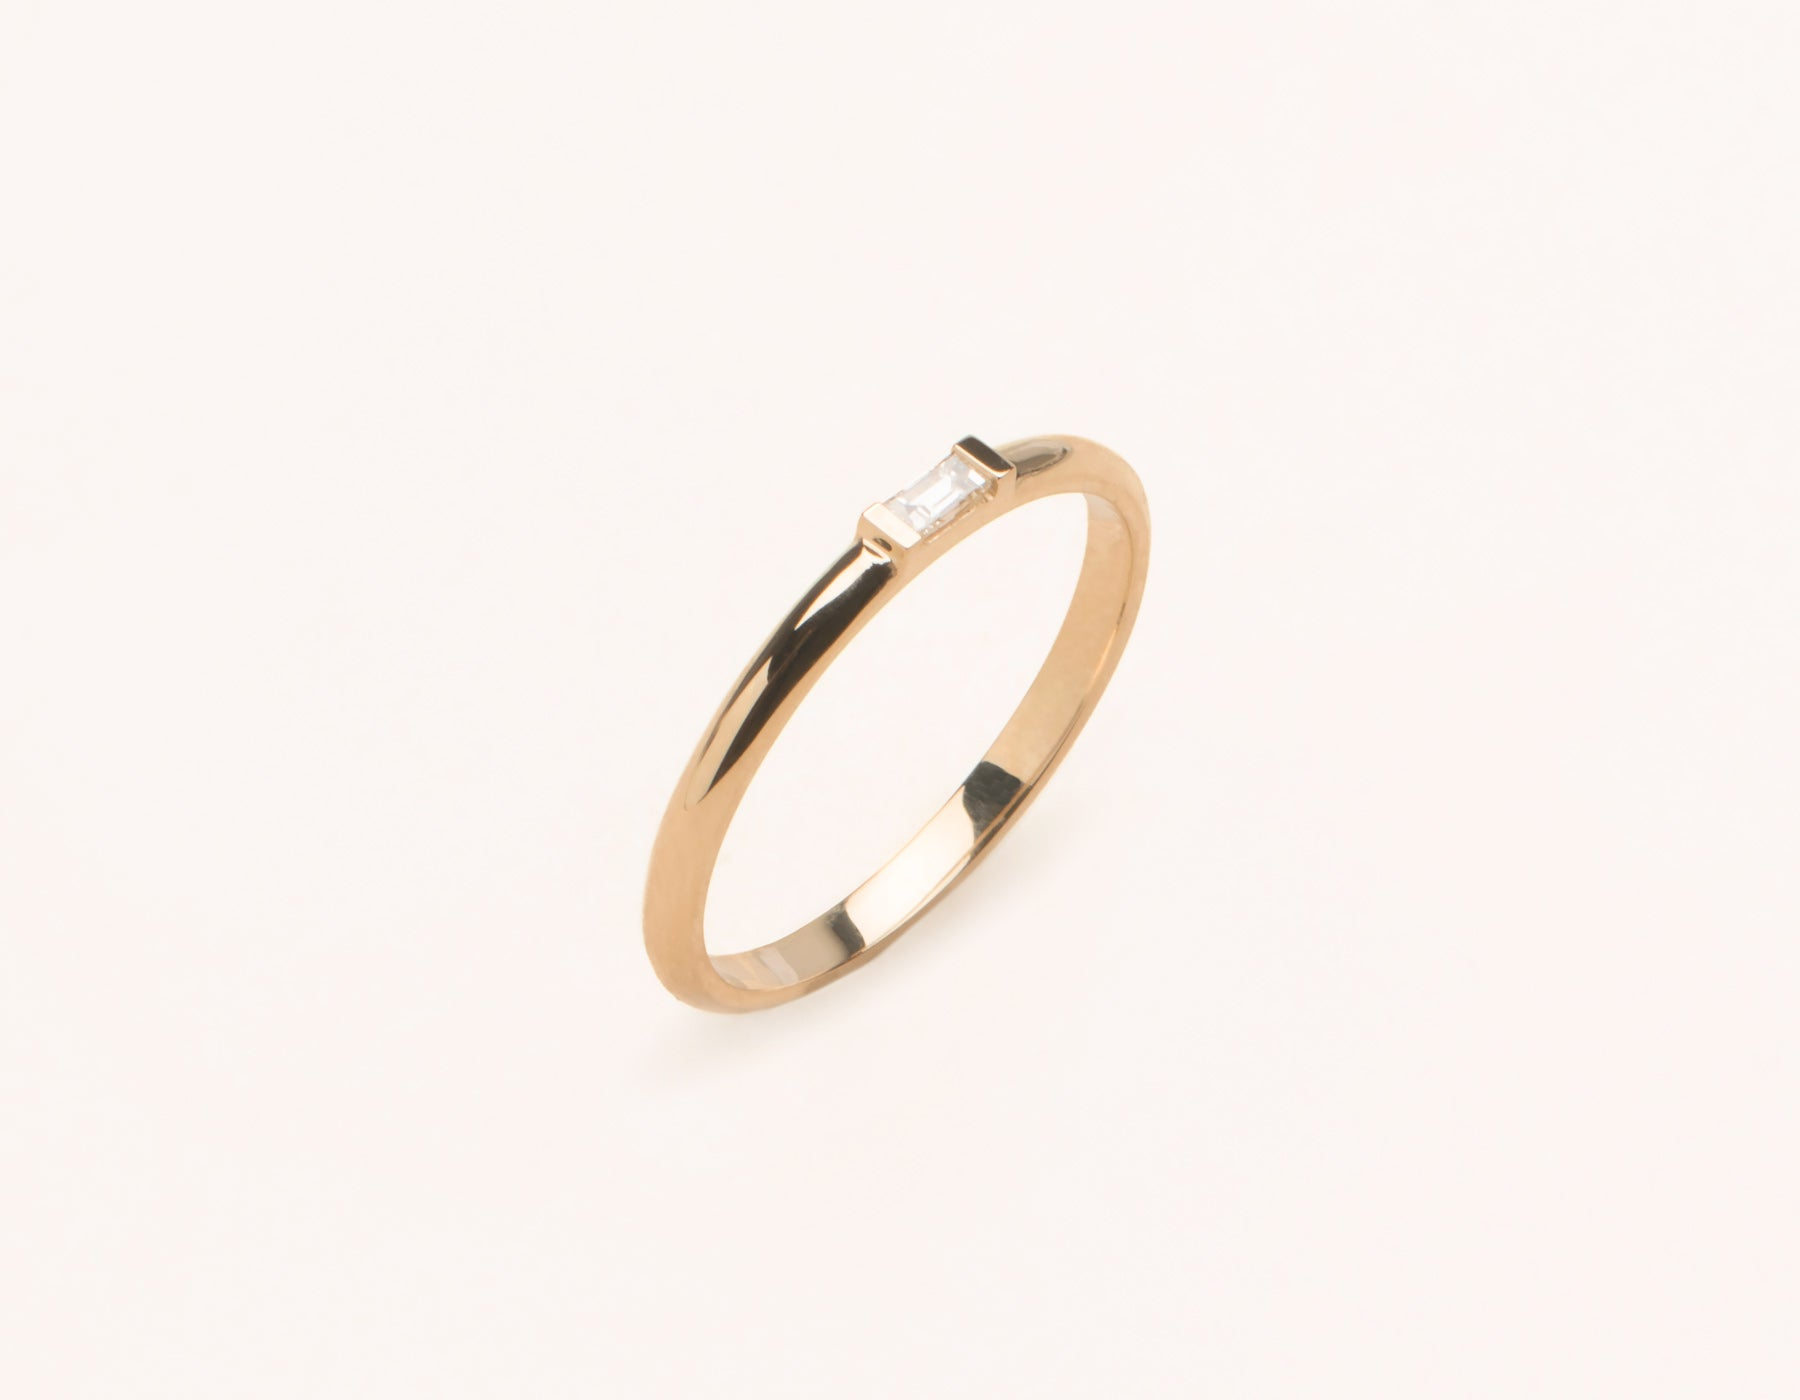 Rose Gold Baguette Diamond Ring Vrai Oro